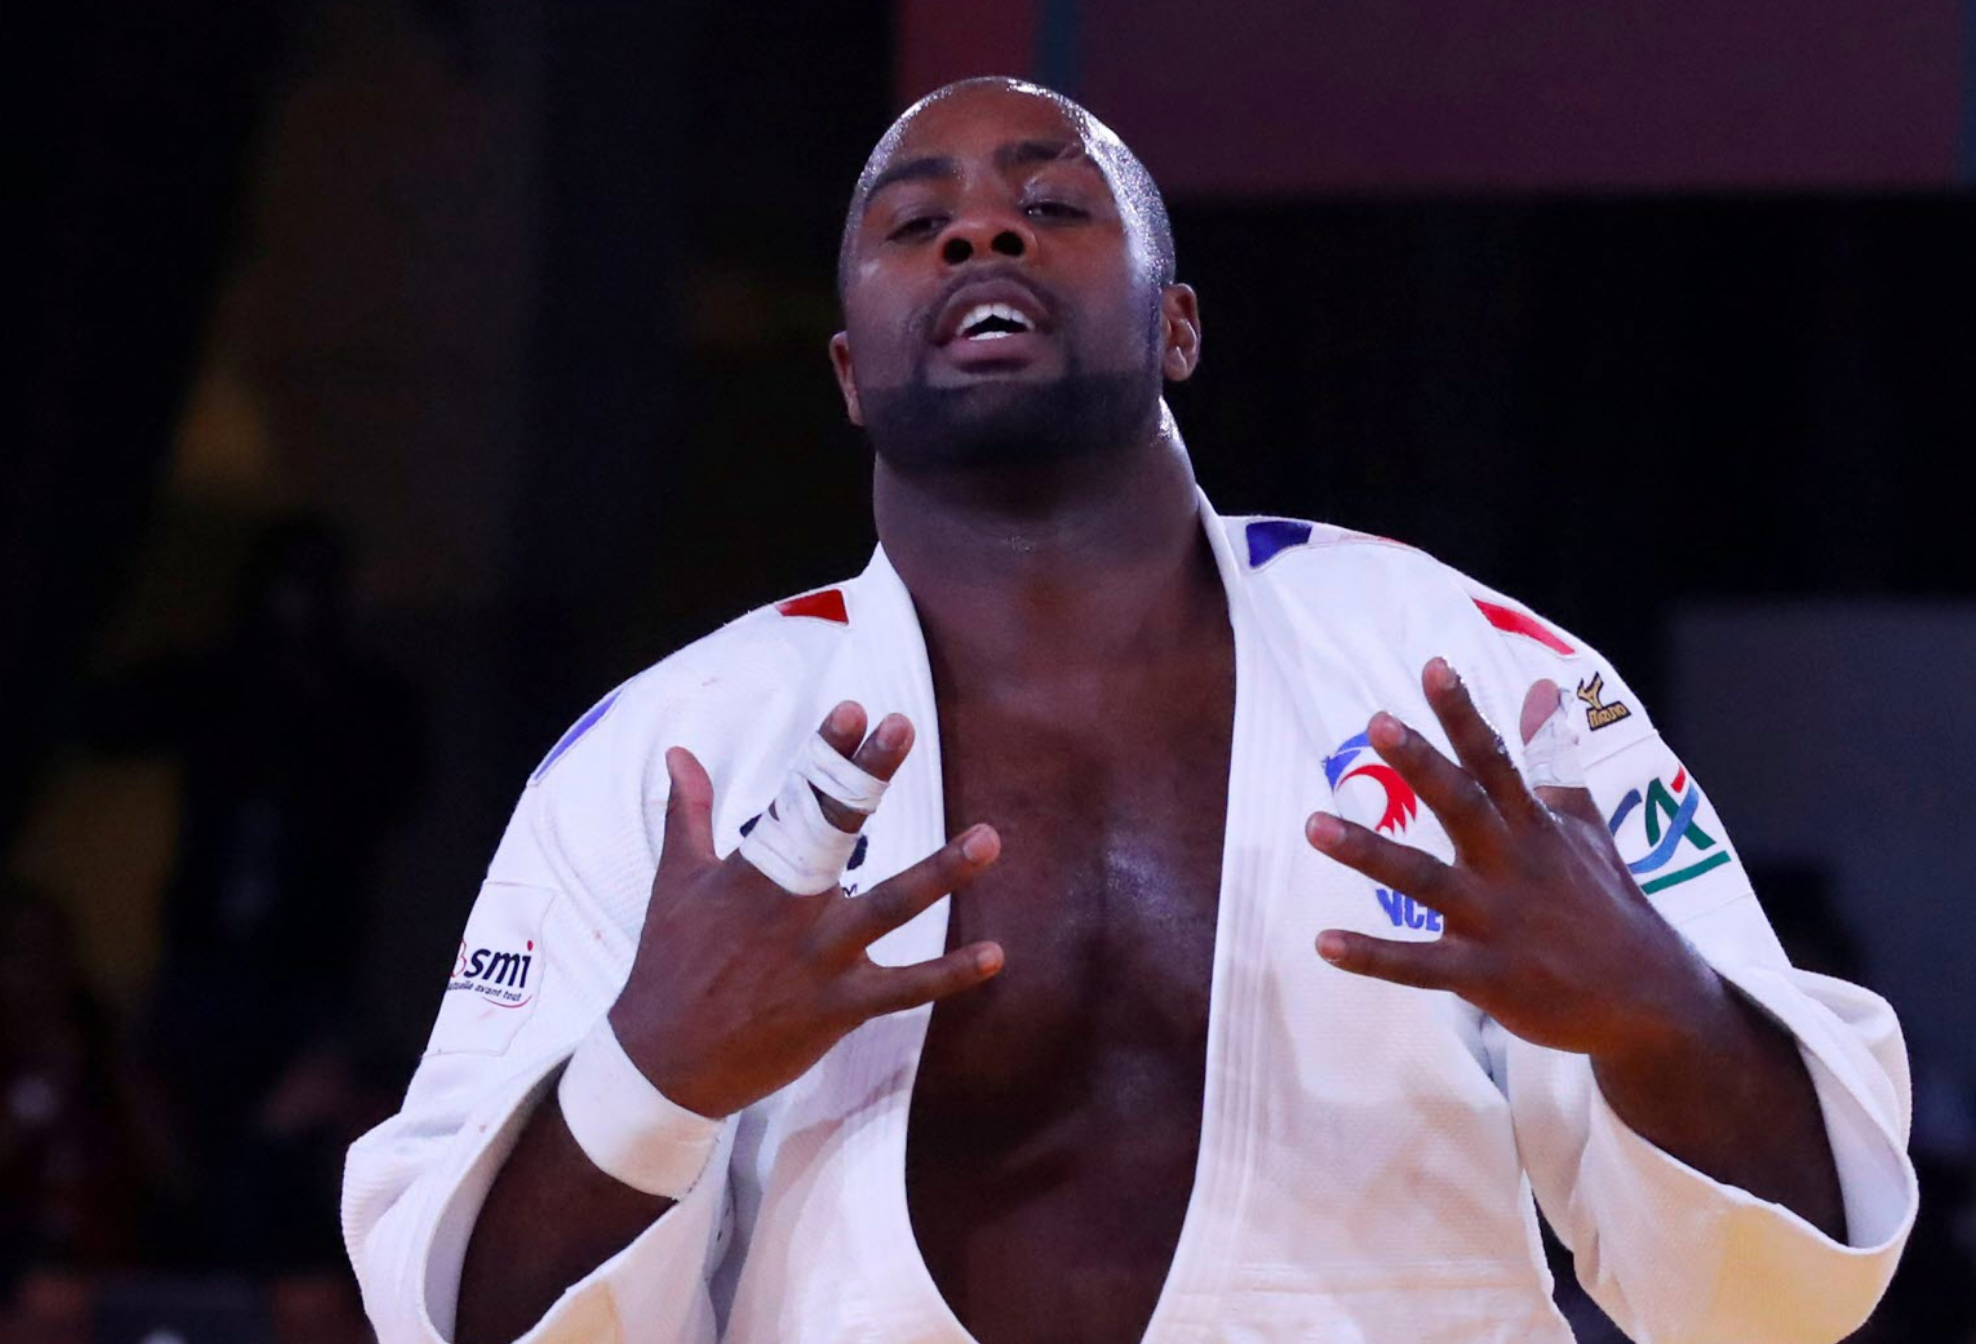 Teddy Riner a été battu ce matin en qualifications lors du Grand chelem de Paris